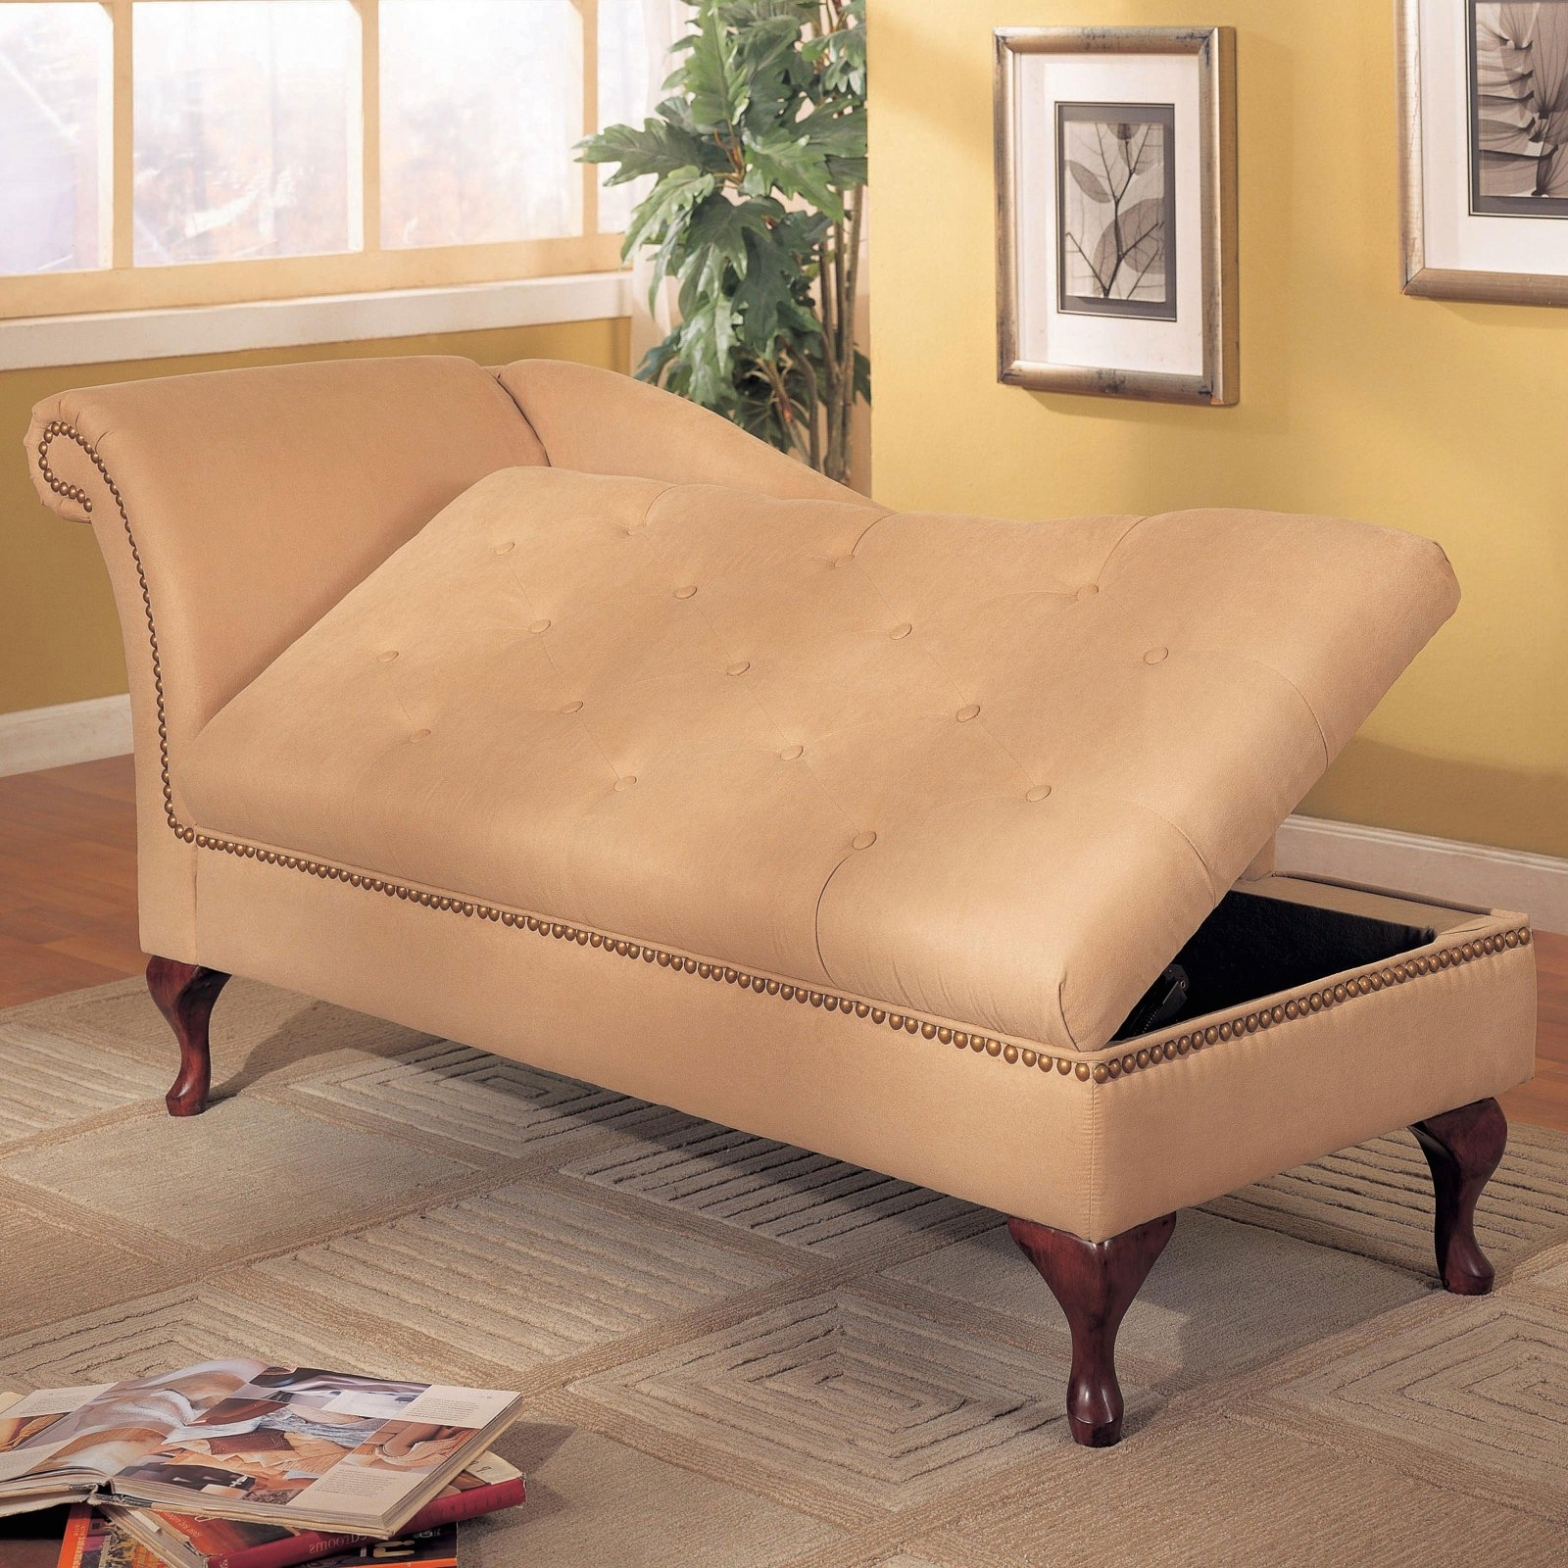 Home Decor: Small Bedroom Chaise Lounge Chairs • Lounge Chairs With Most Recent Narrow Chaise Lounge Chairs (View 14 of 15)